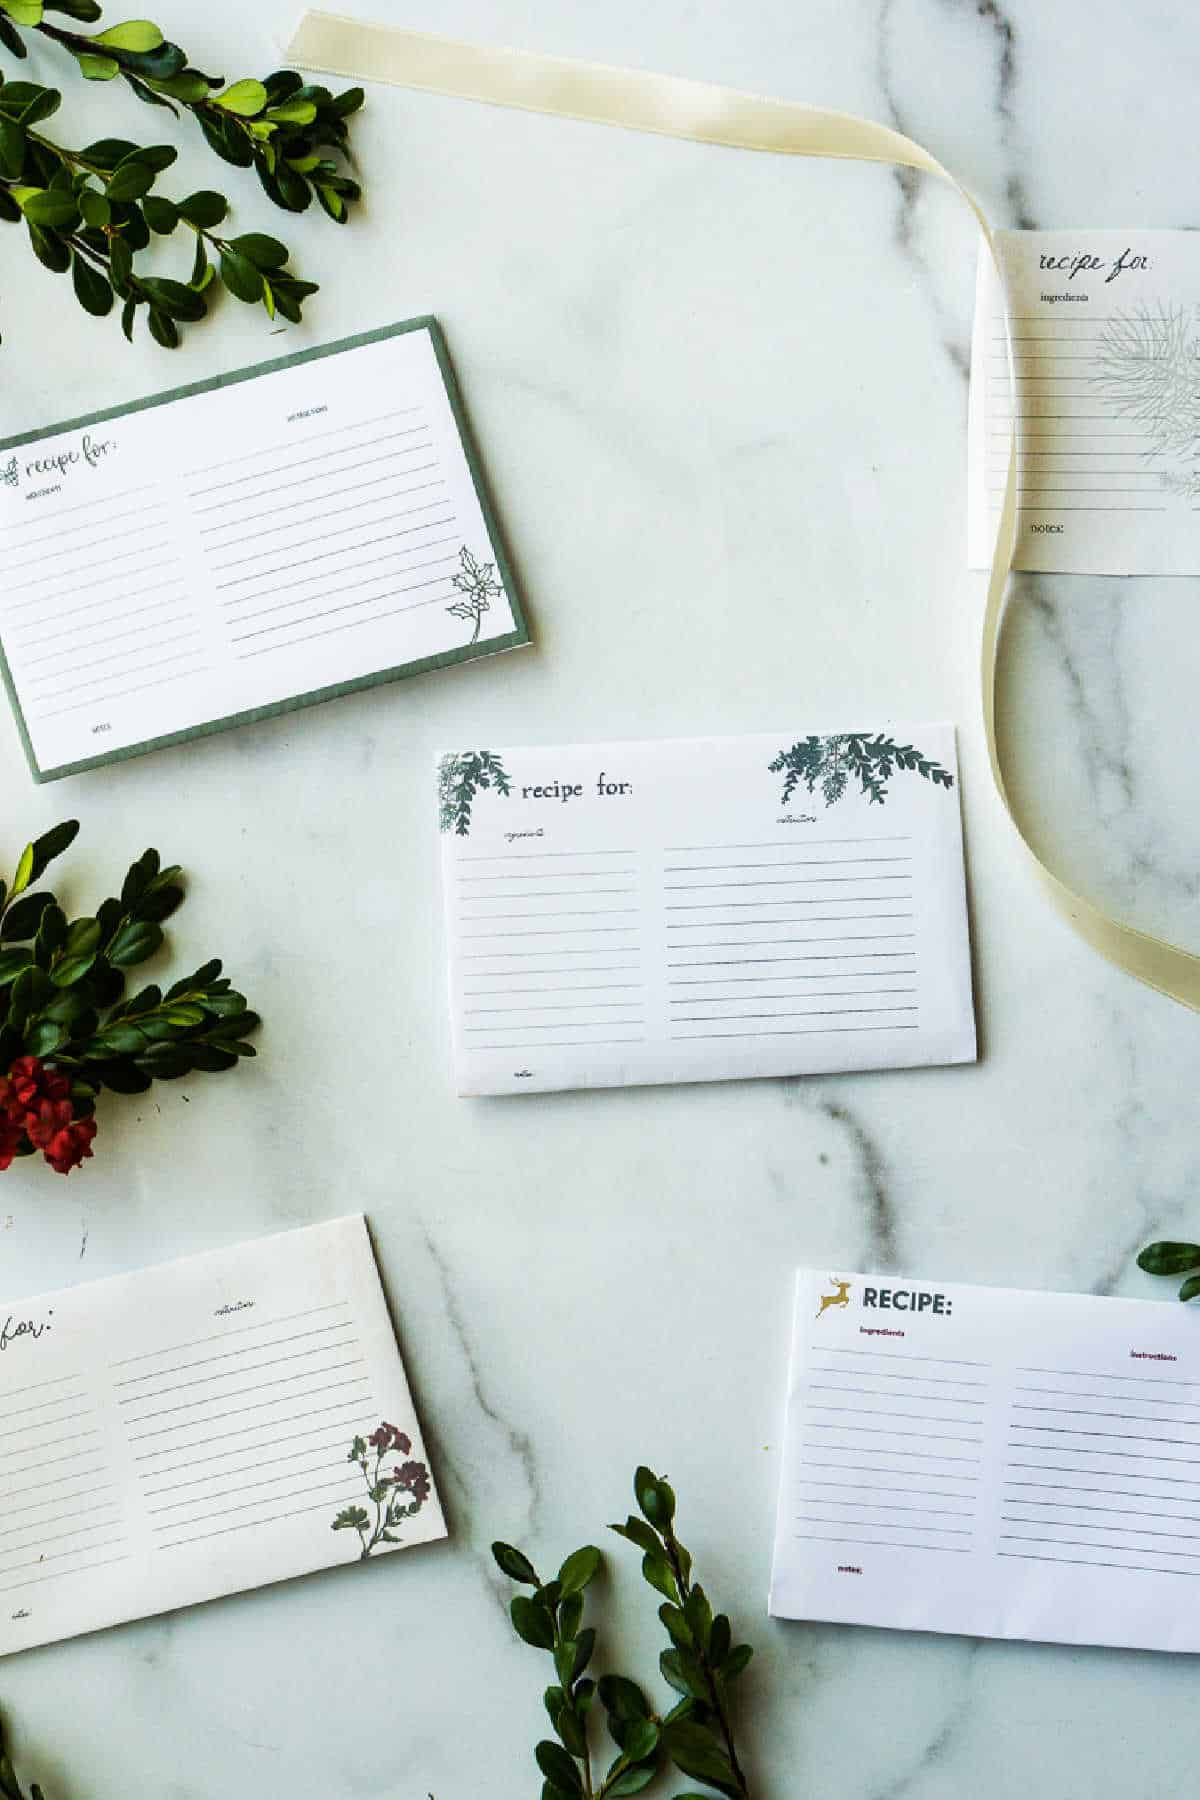 5 recipe cards on marble surface with greenery